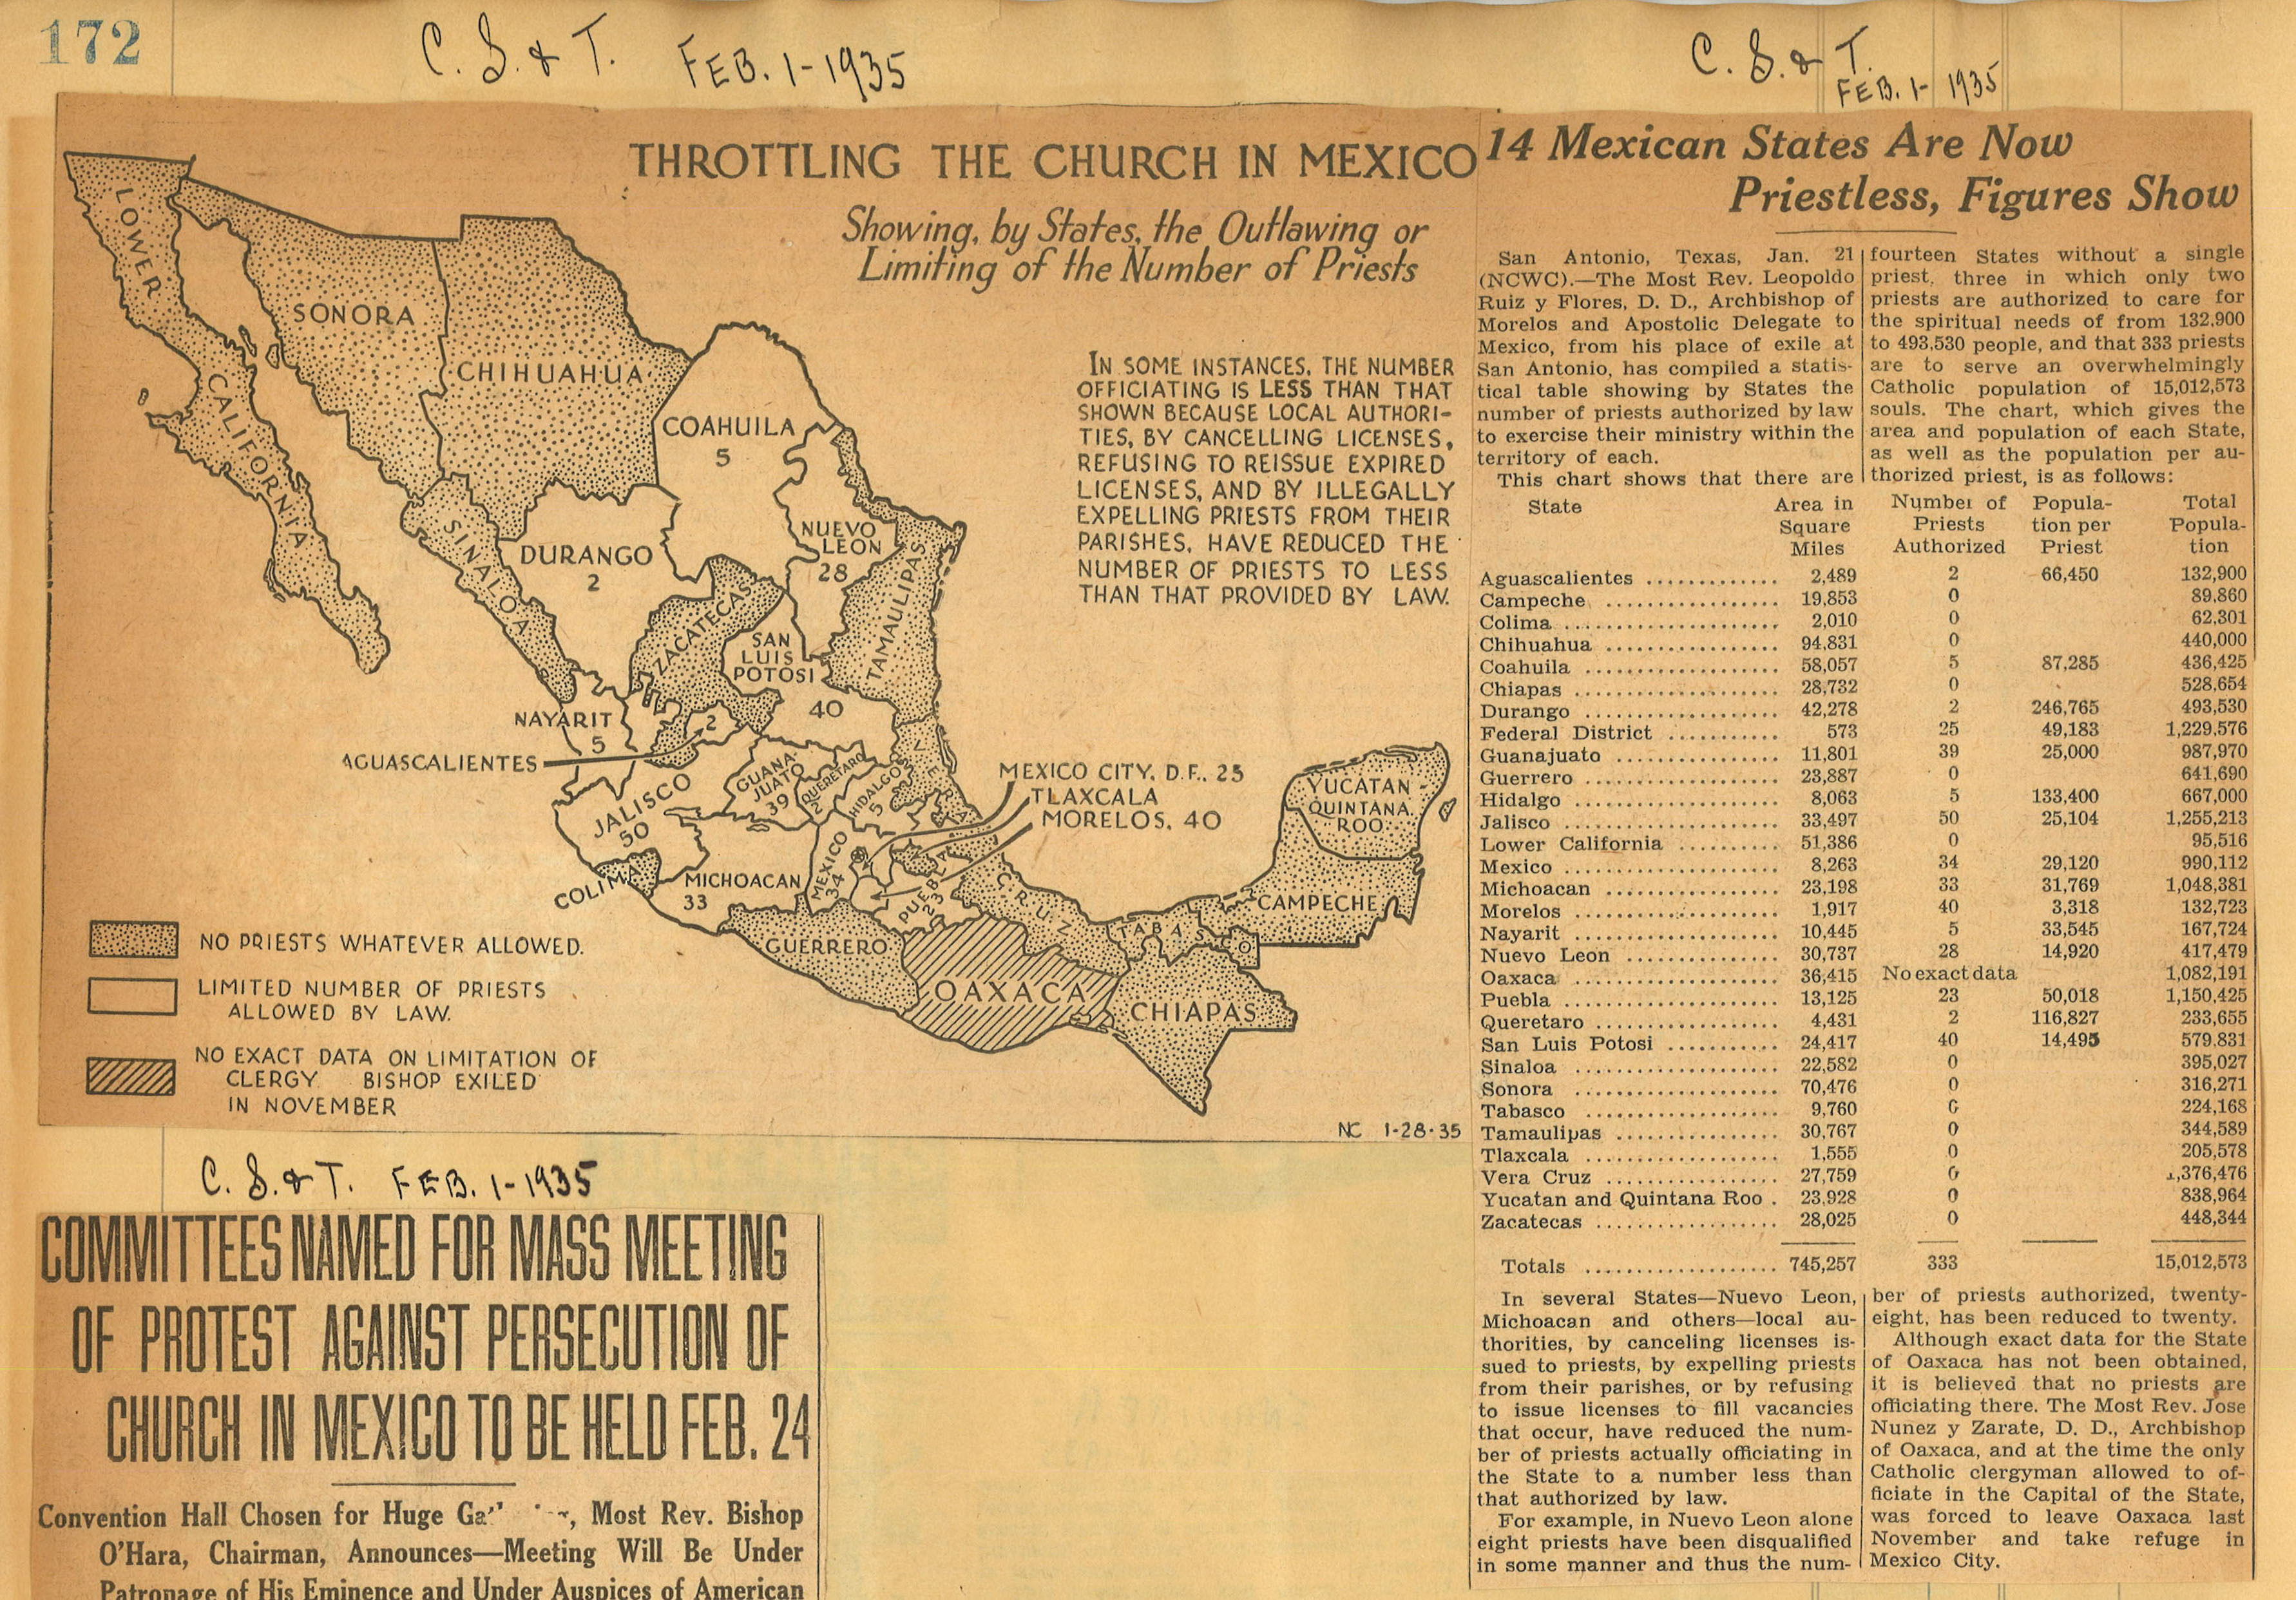 Throttling the Church in Mexico